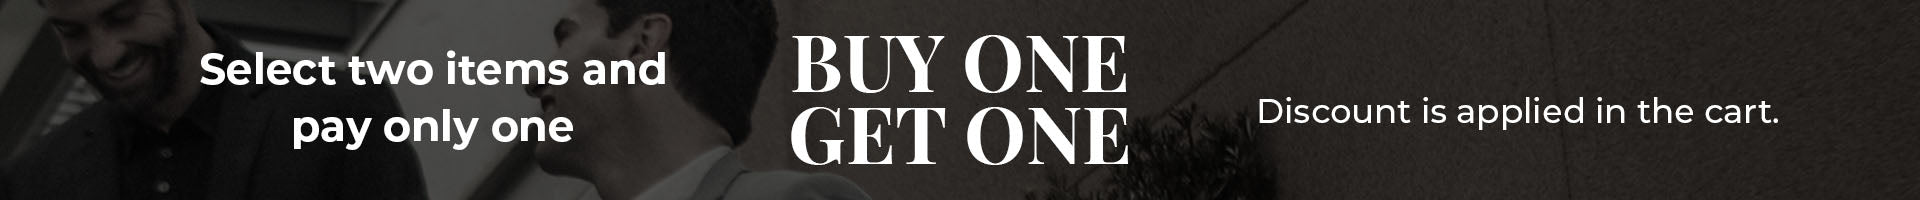 Buy One Get One Sandro Moscoloni in selected styles